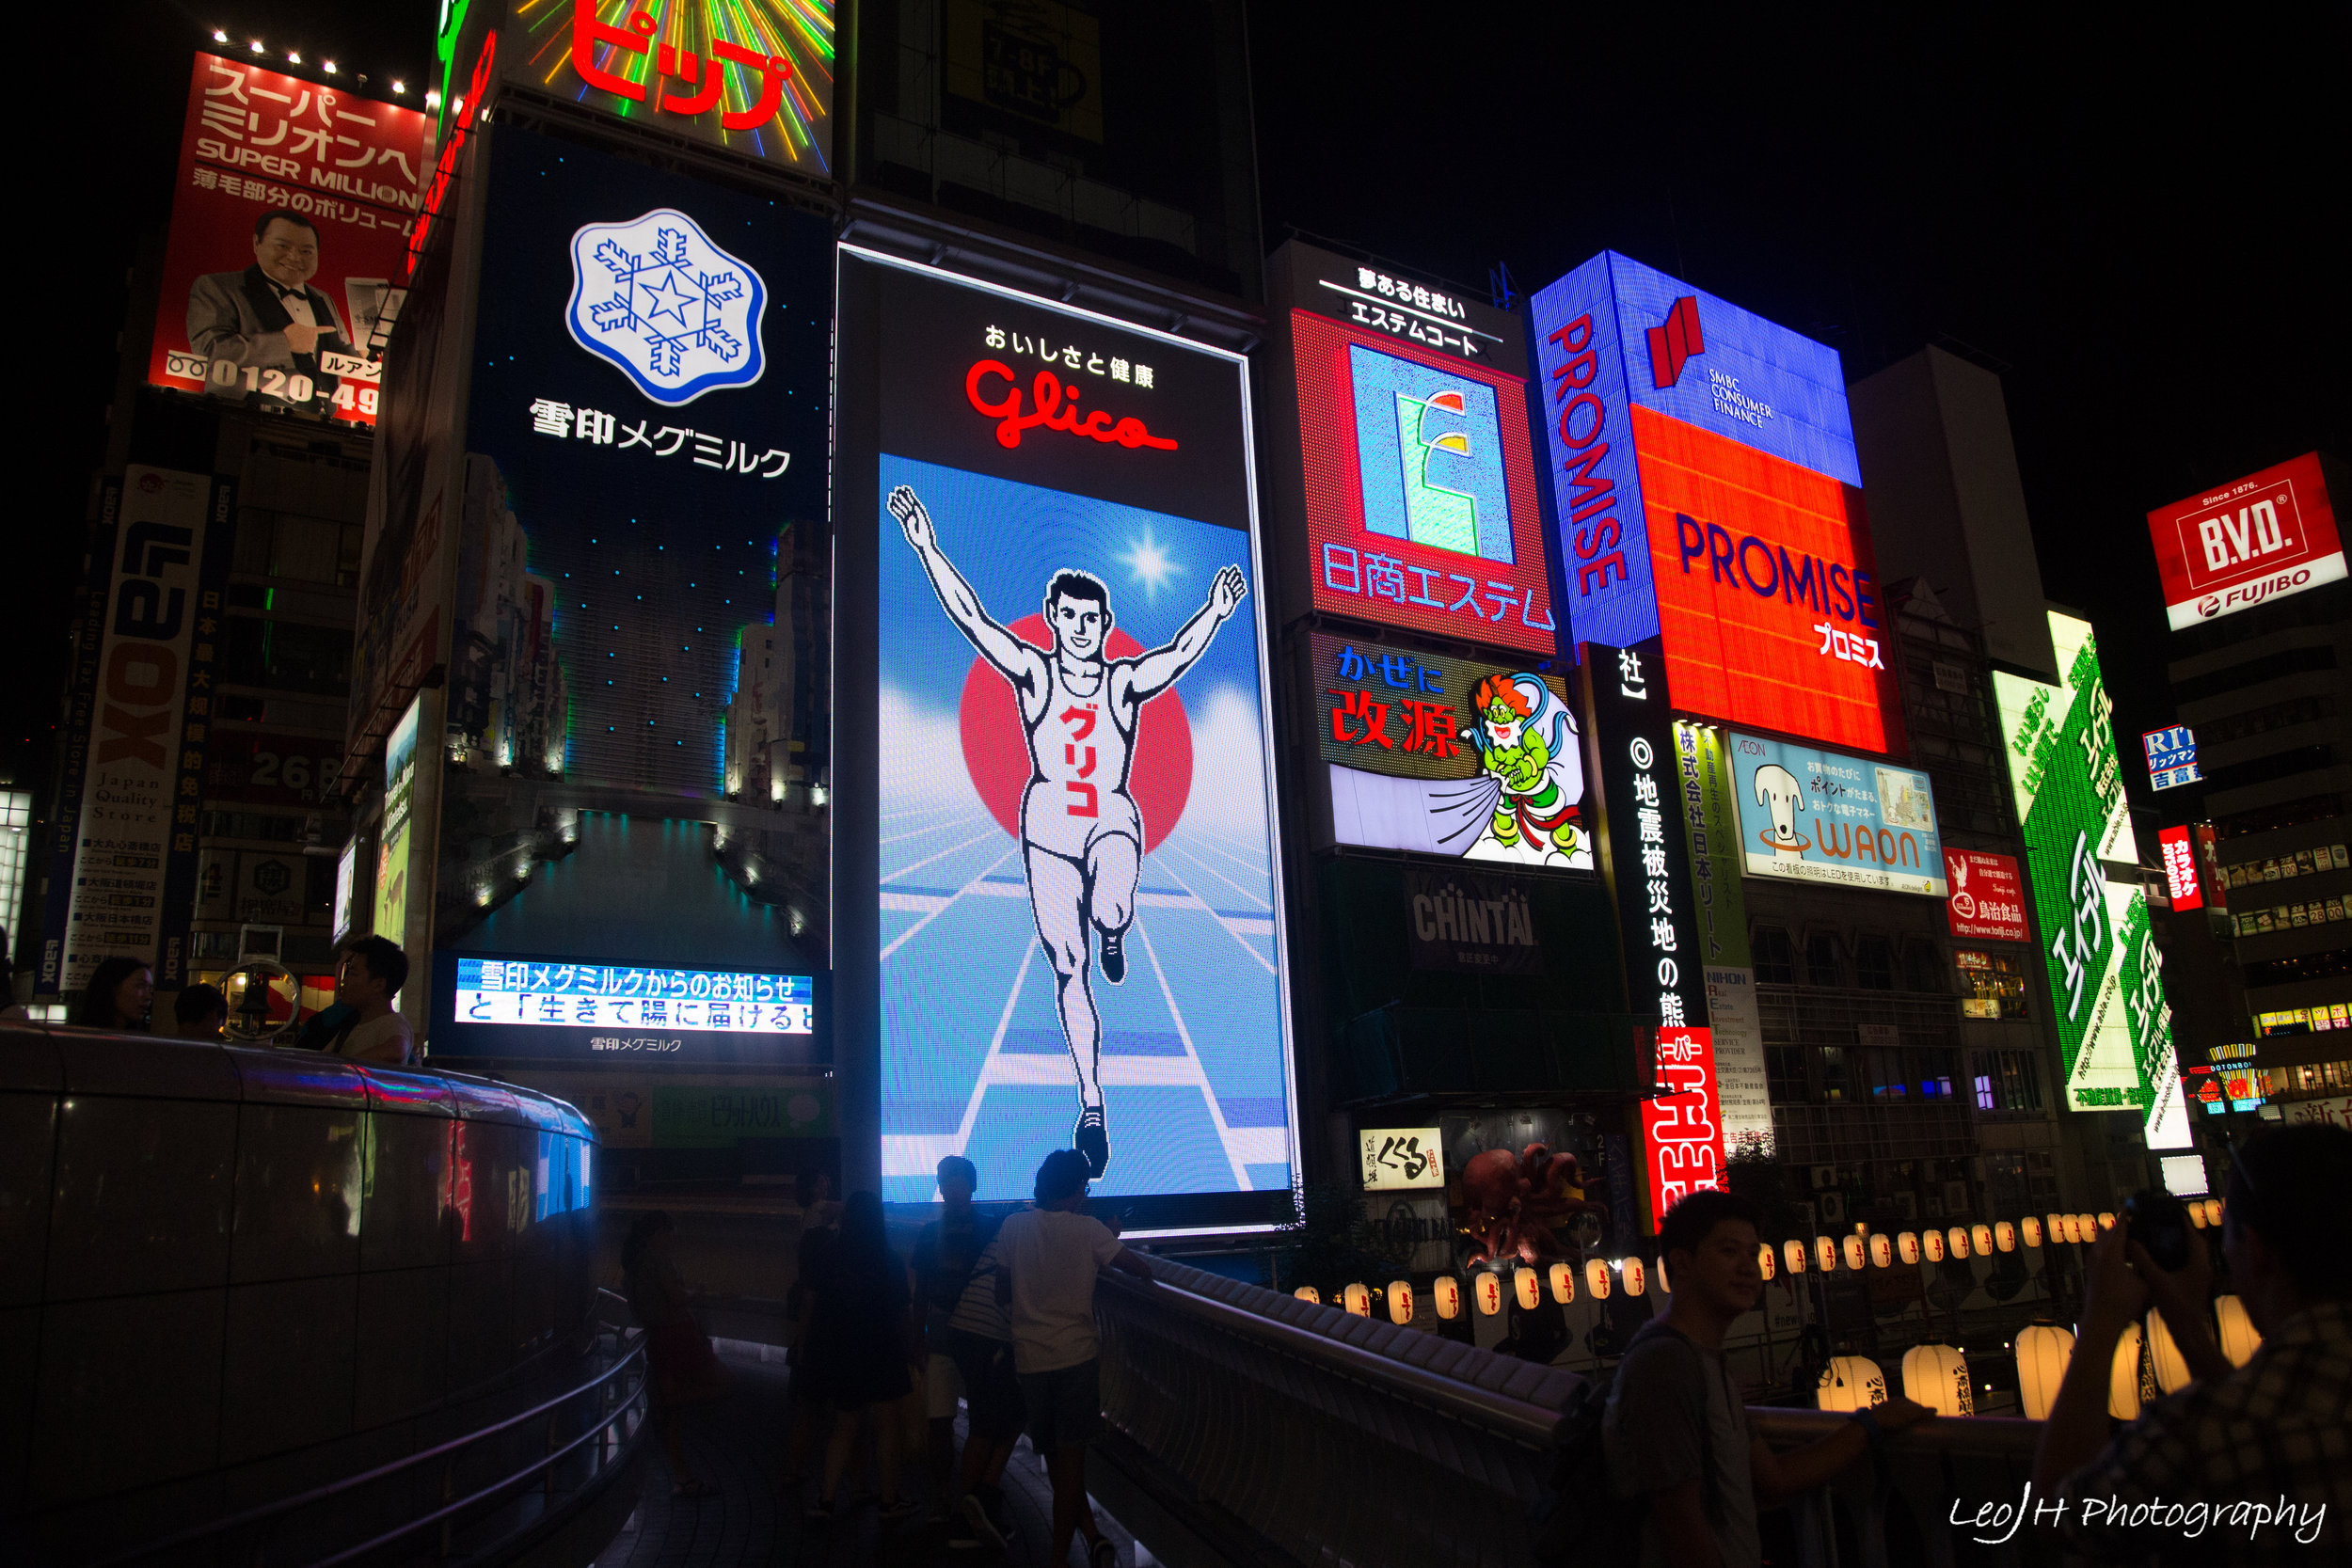 The famous Glico sign. And everyone around the area imitating it